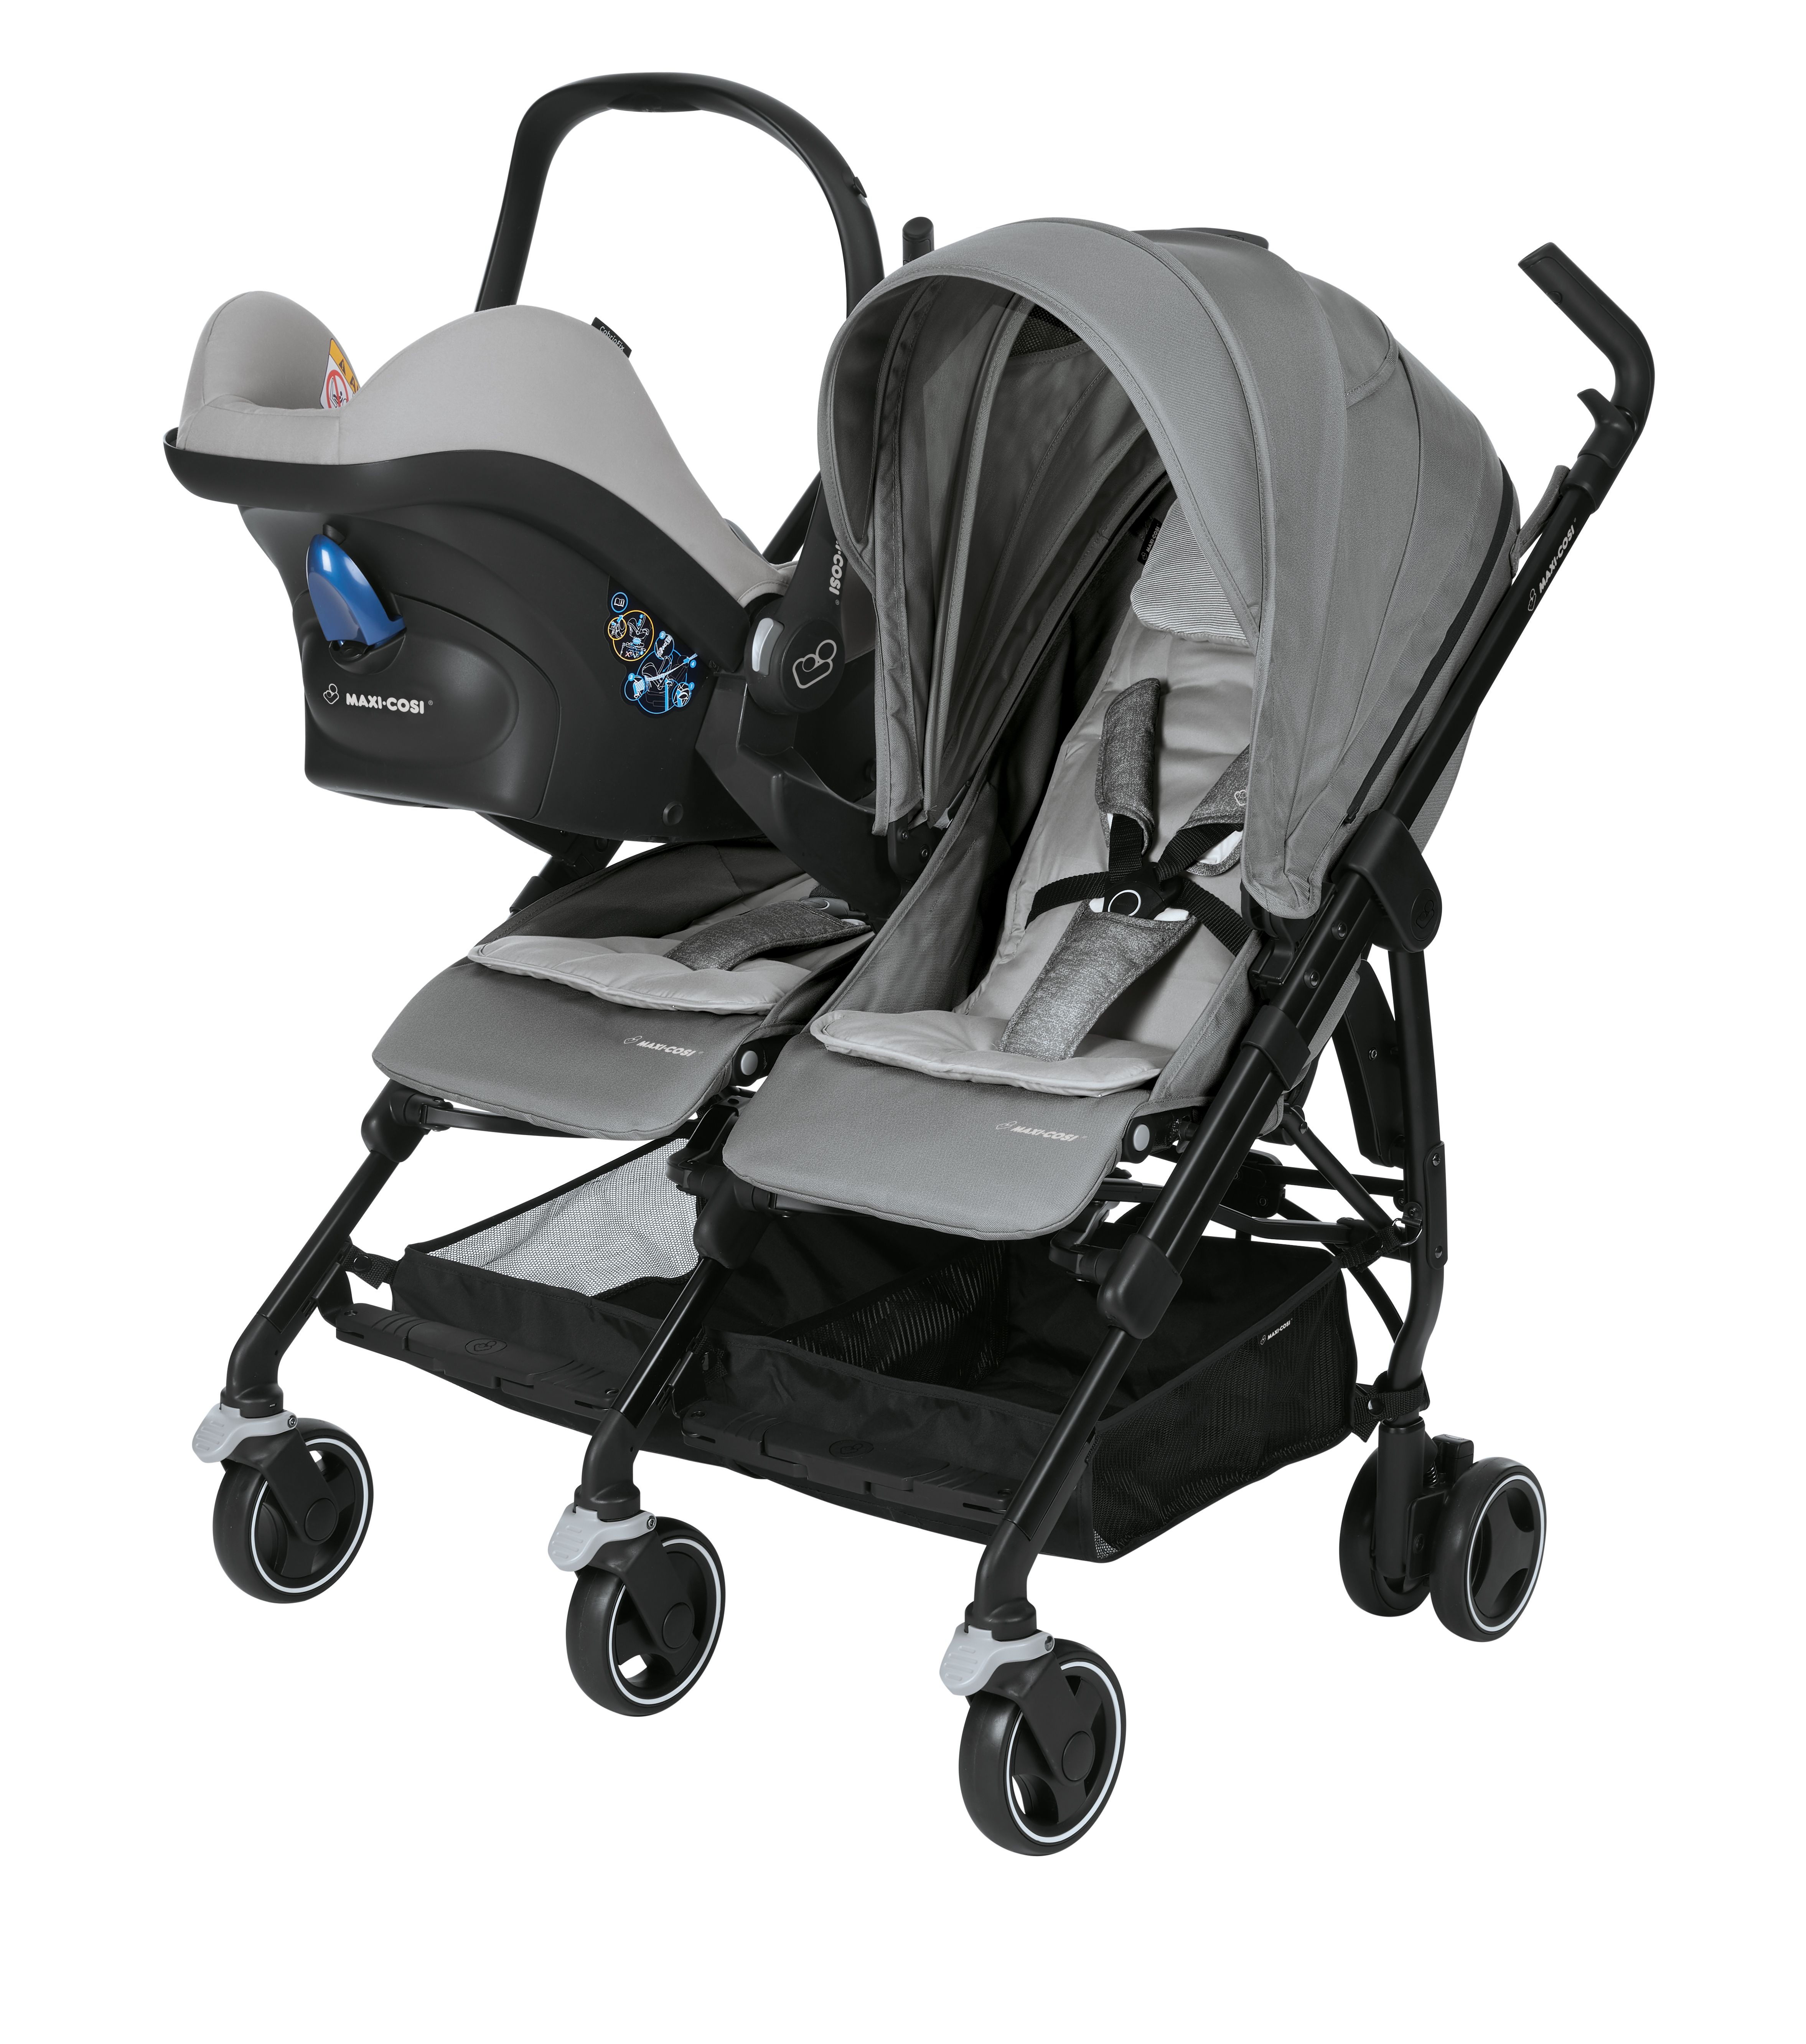 maxi cosi buggy dana for2 2018 nomad grey buy at. Black Bedroom Furniture Sets. Home Design Ideas